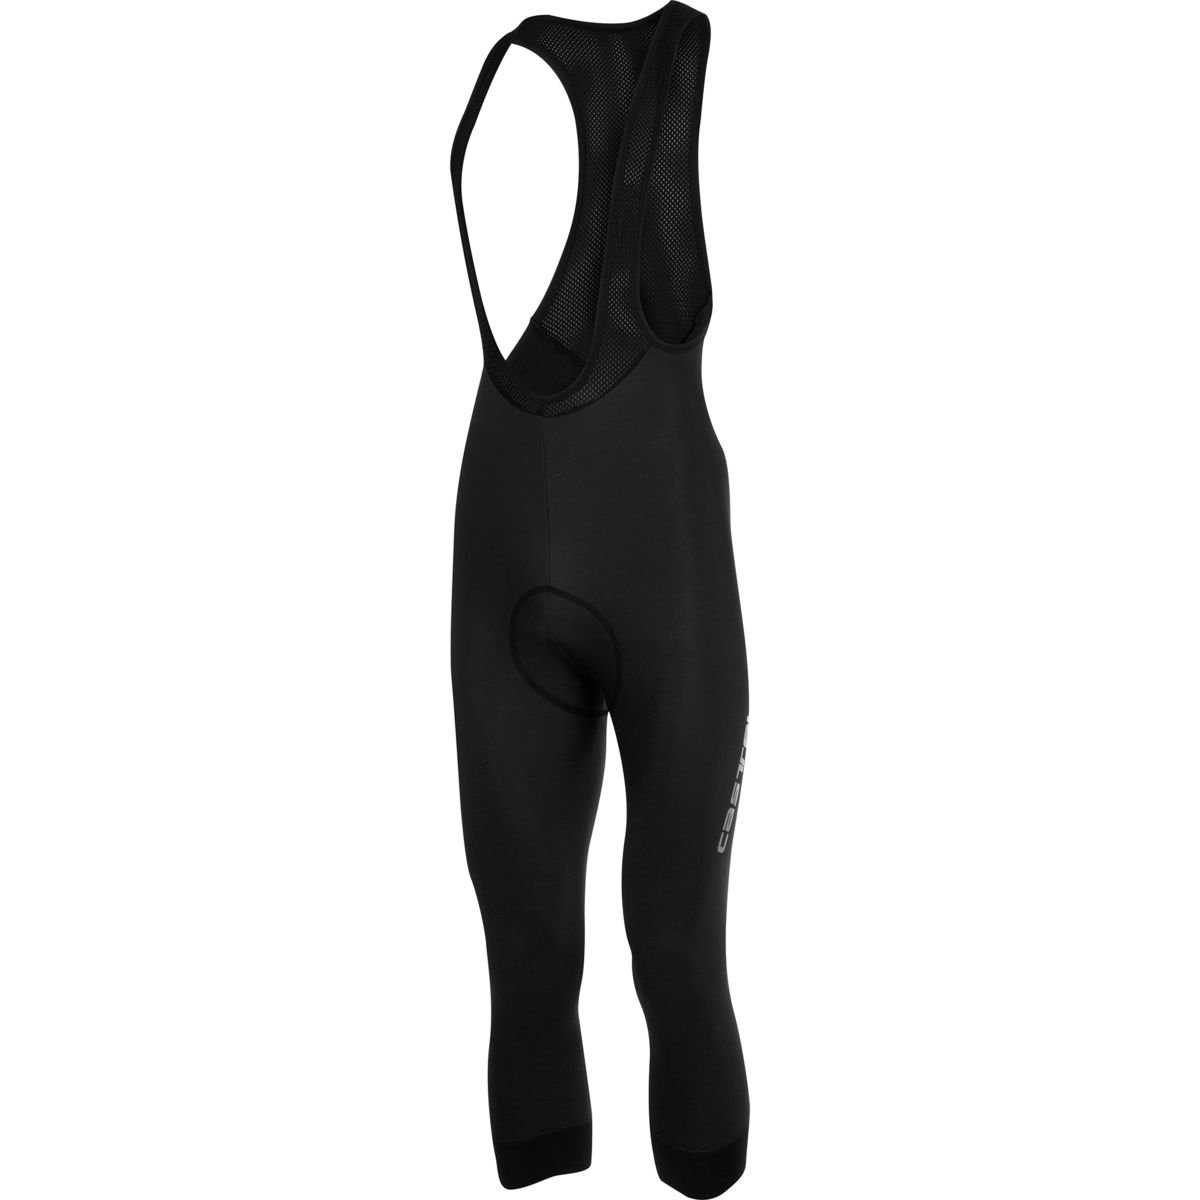 Castelli Nano Flex 2 Bib Knickers - Men's Black, 3XL